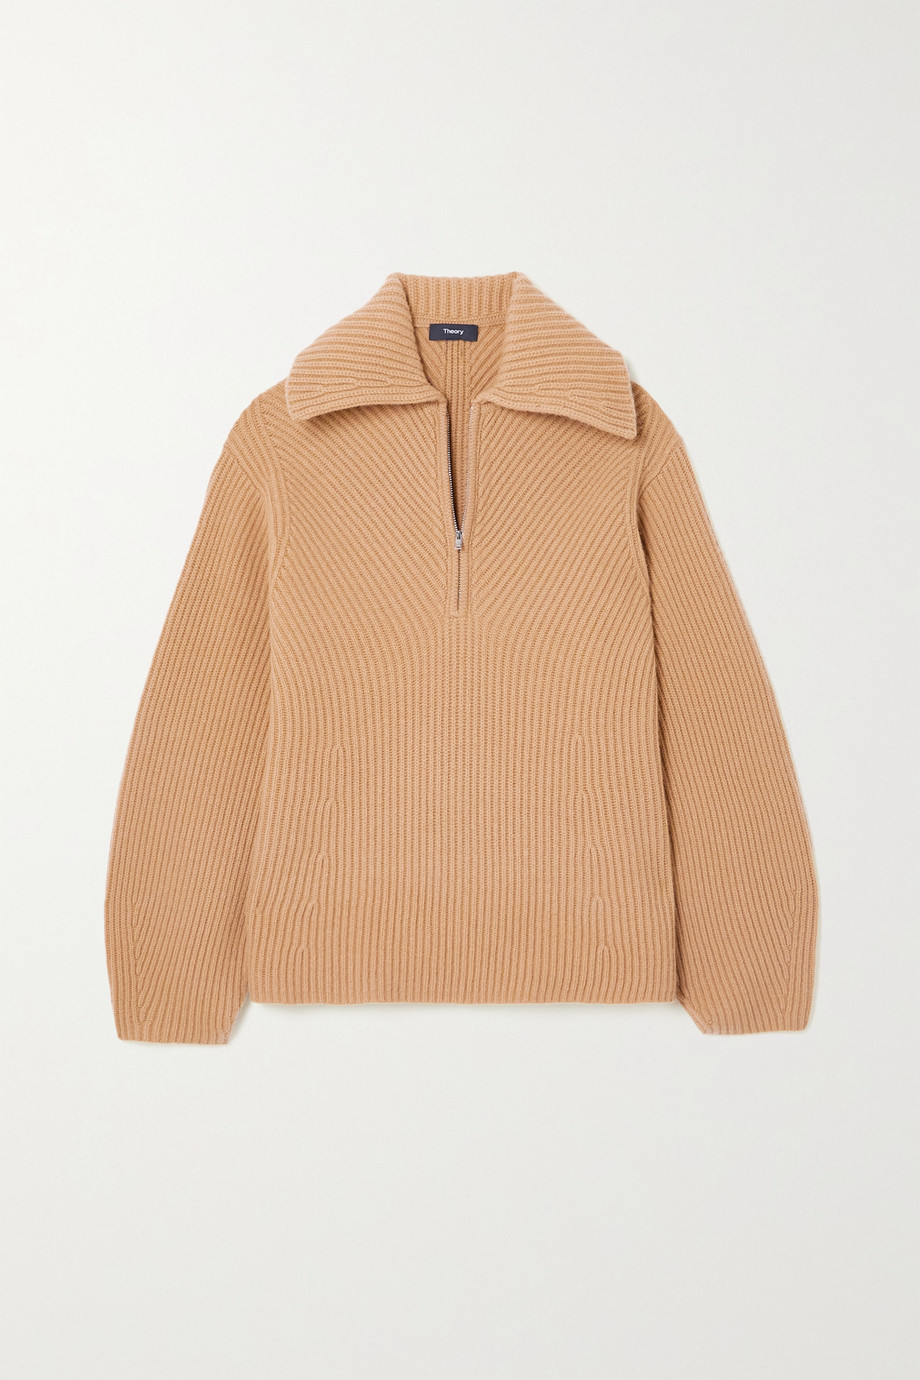 Theory Moving ribbed wool and cashmere-blend sweater